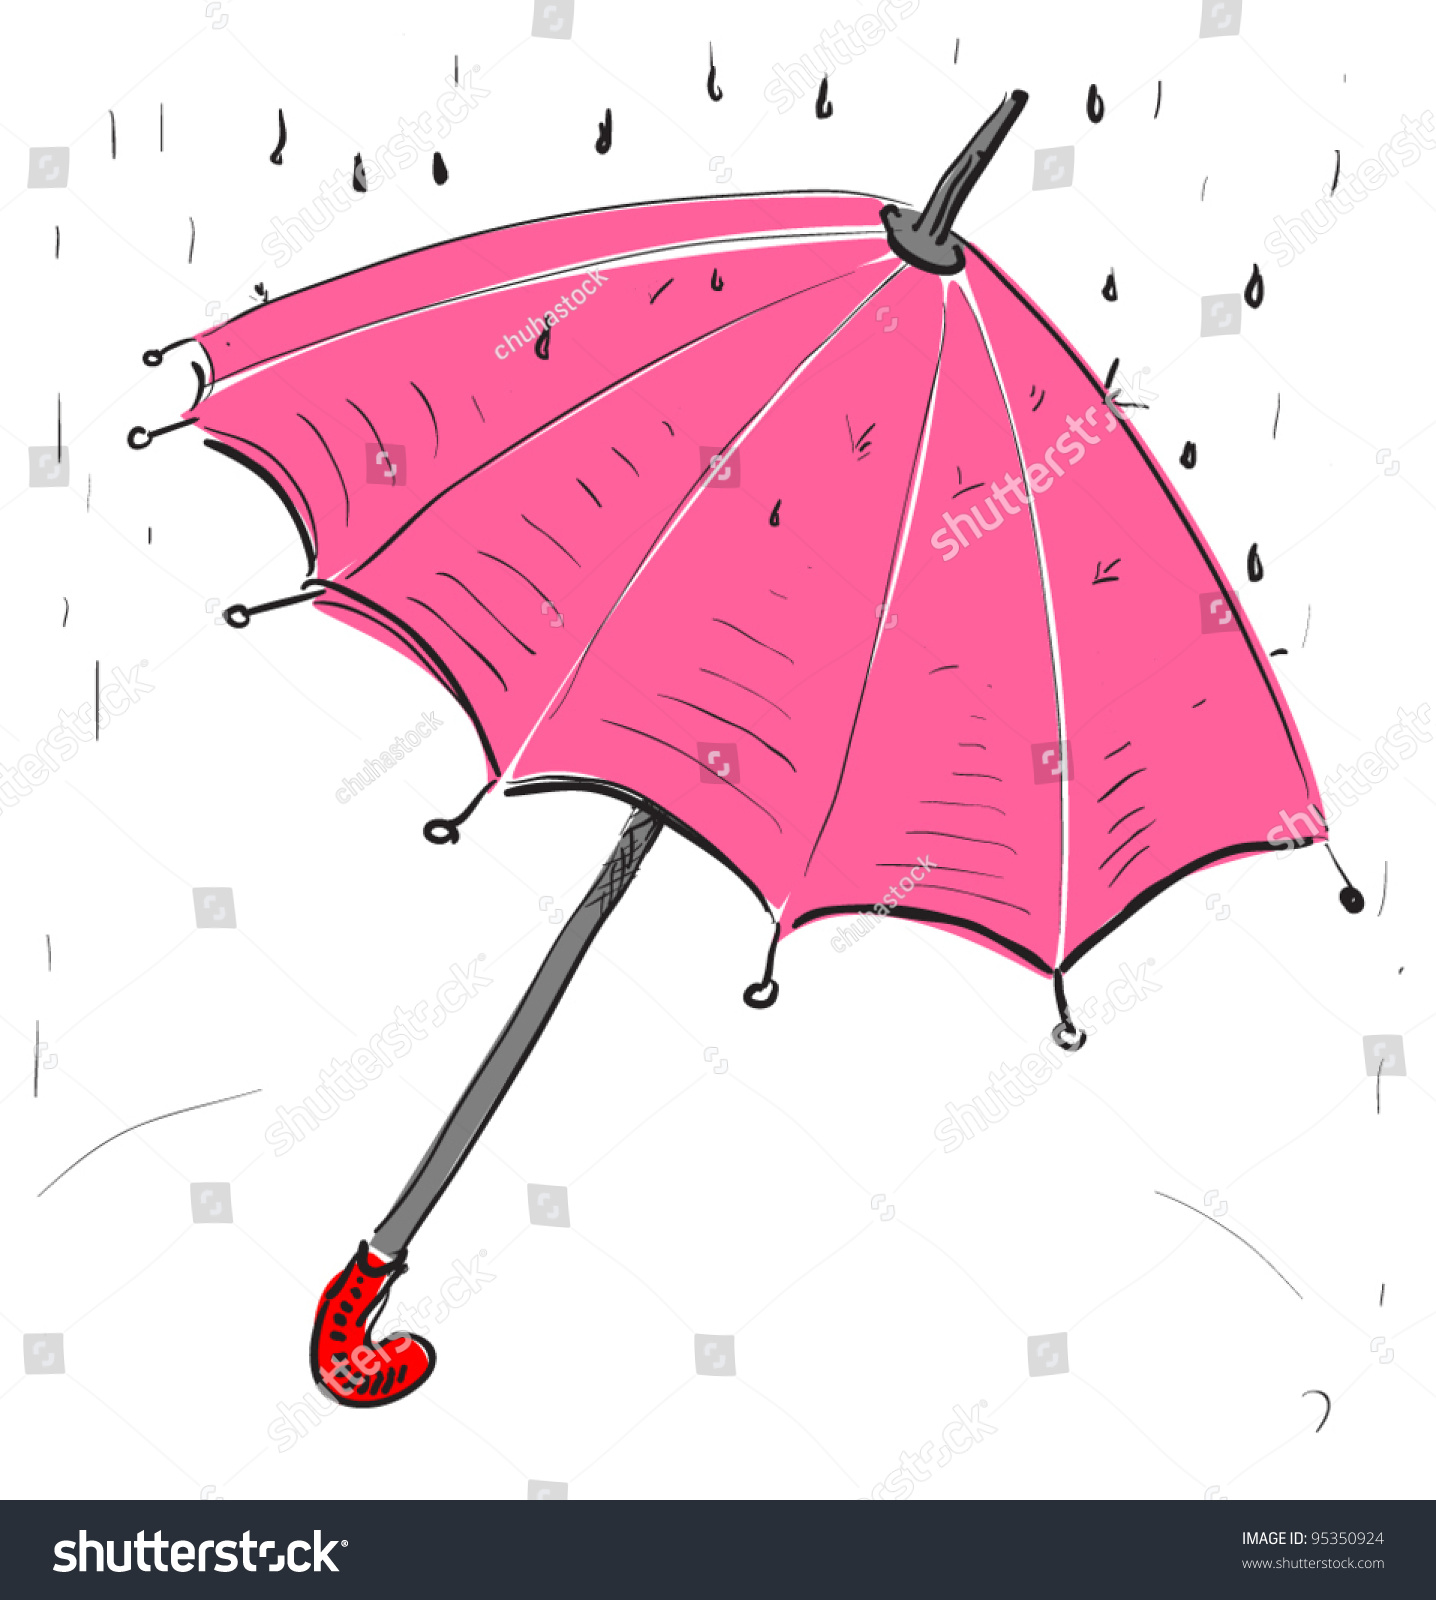 Cute Umbrella Drawing How To Draw A Japanese Anime Girl